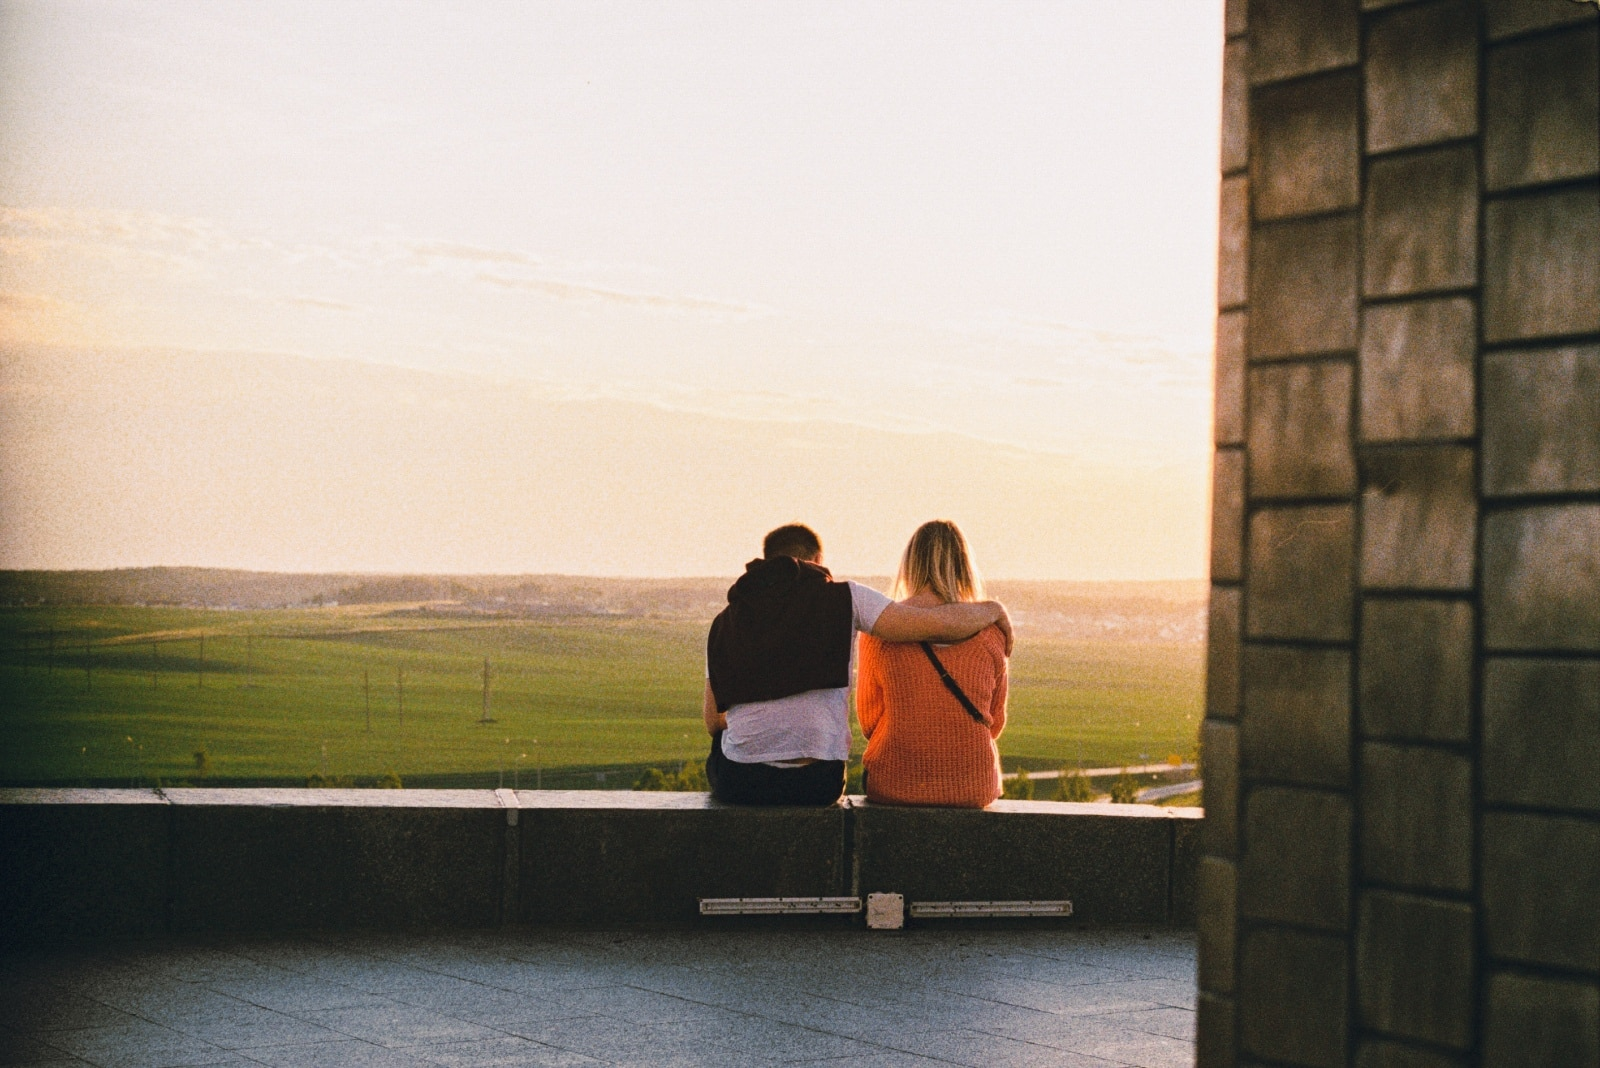 man hugging woman while sitting on concrete surface outdoor